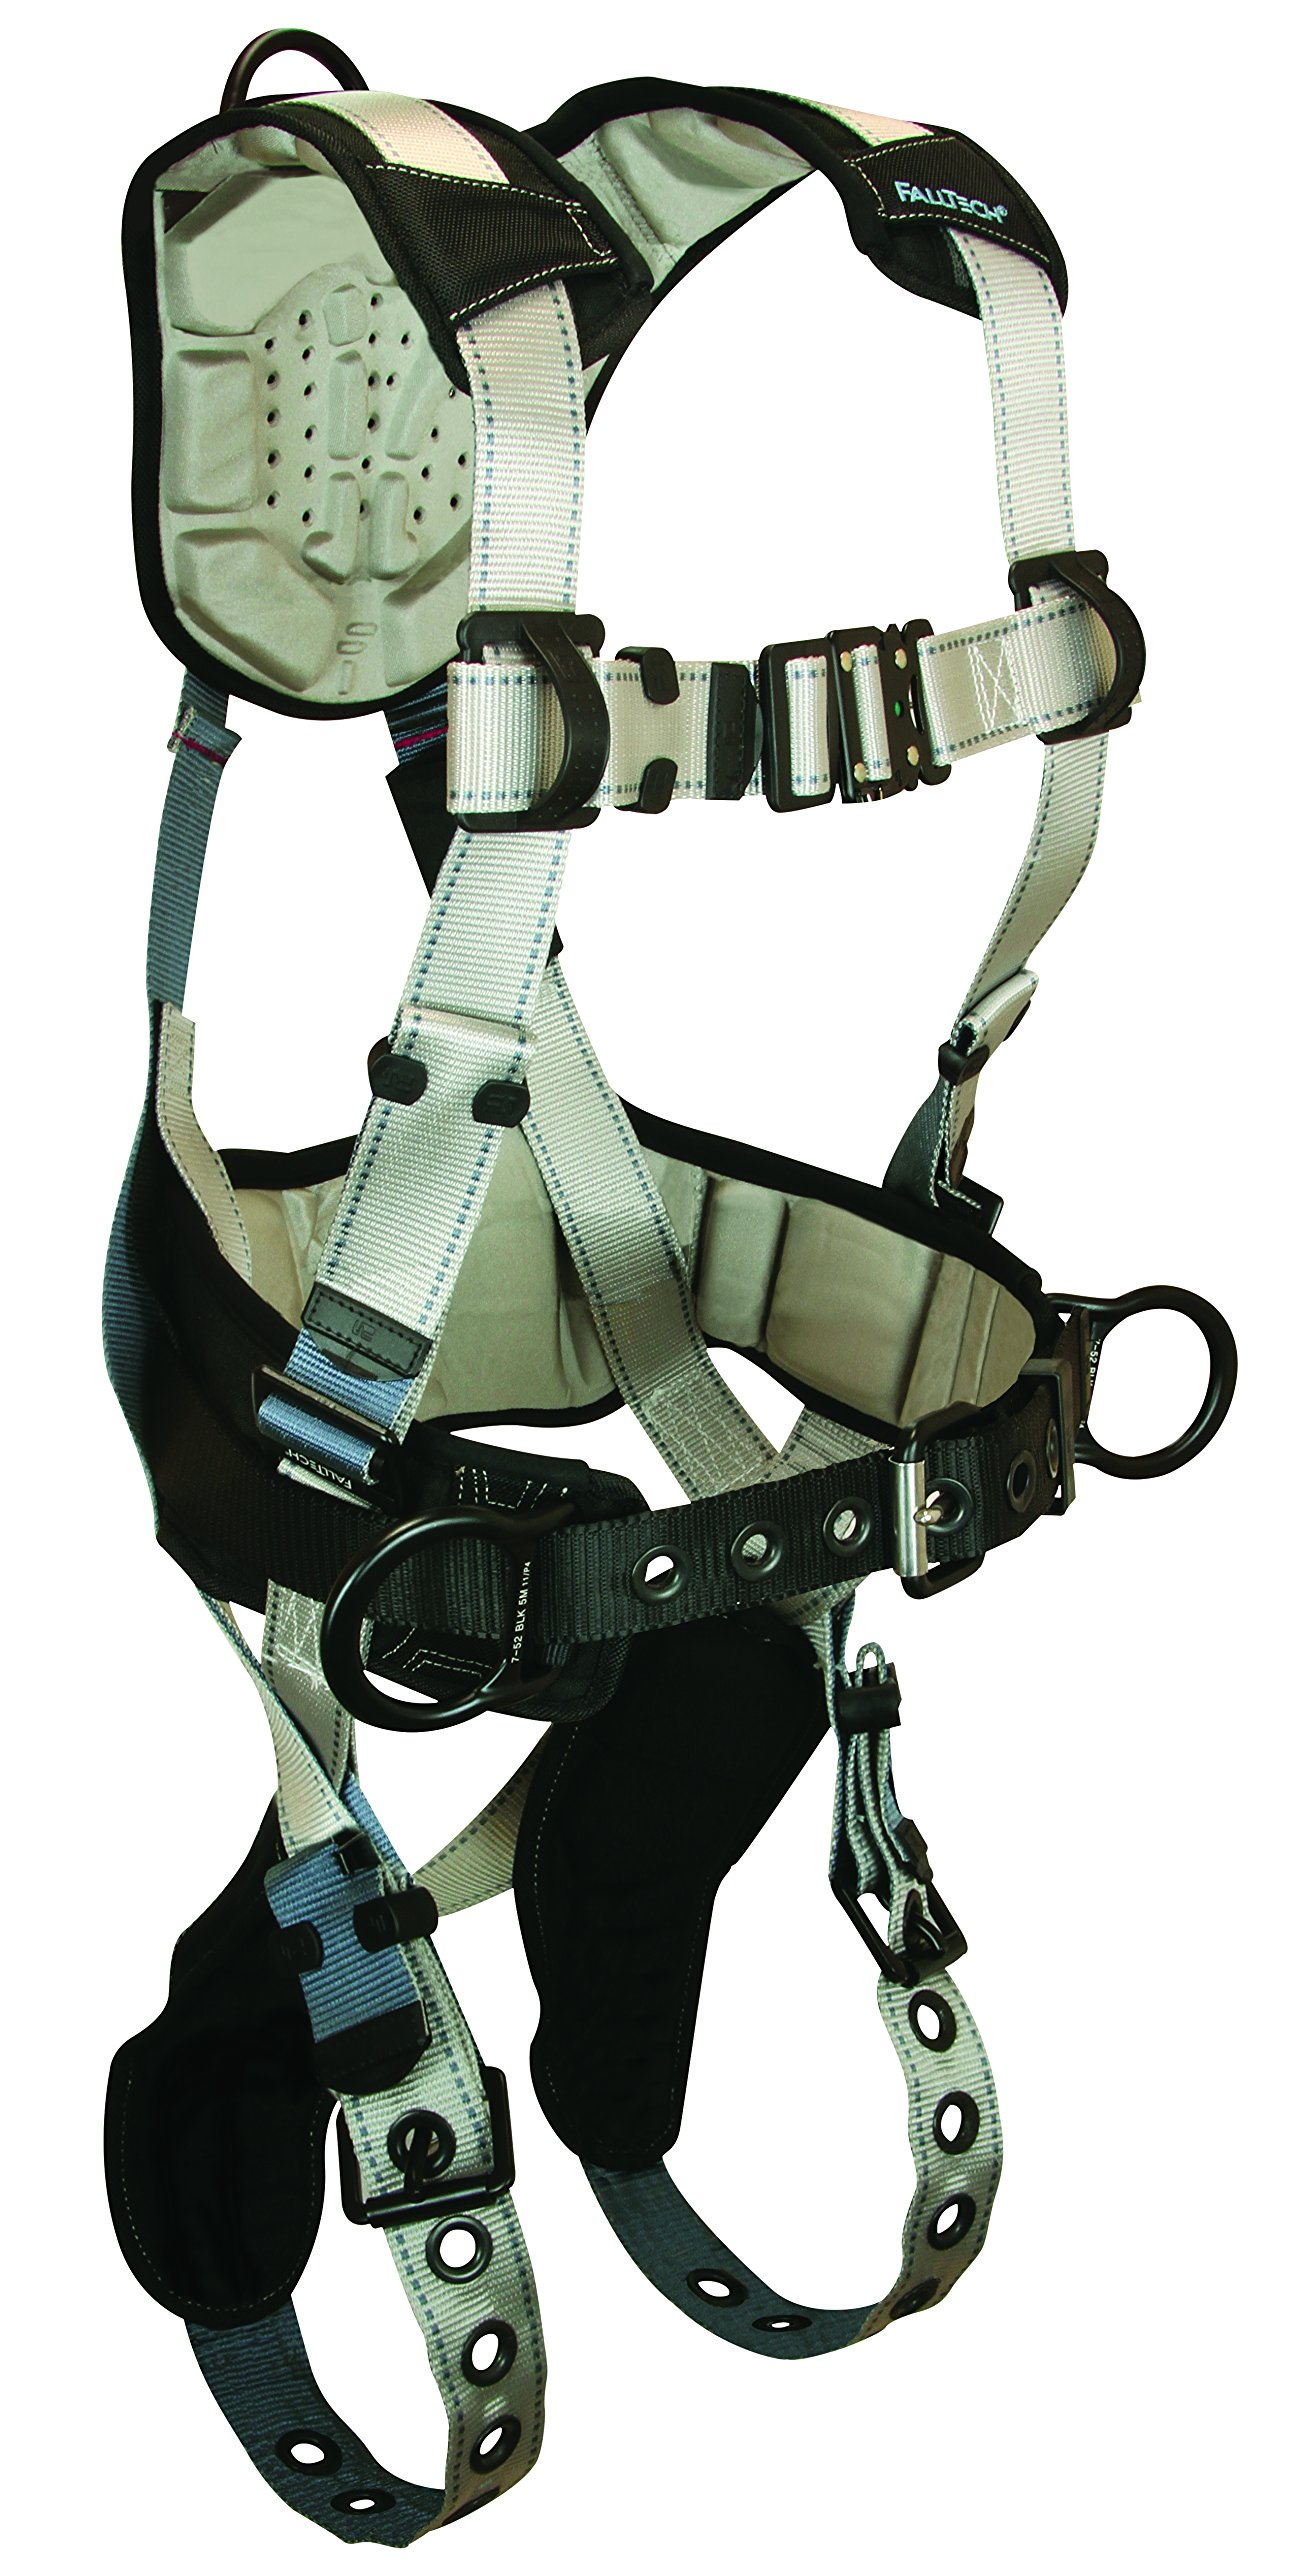 FallTech 7088XL FlowTech Belted Construction Full Body Harness with 3 D-Rings, FlowScape Pads, Tongue Buckle Legs and Quick Connect Chest, Gray/Black, X-Large